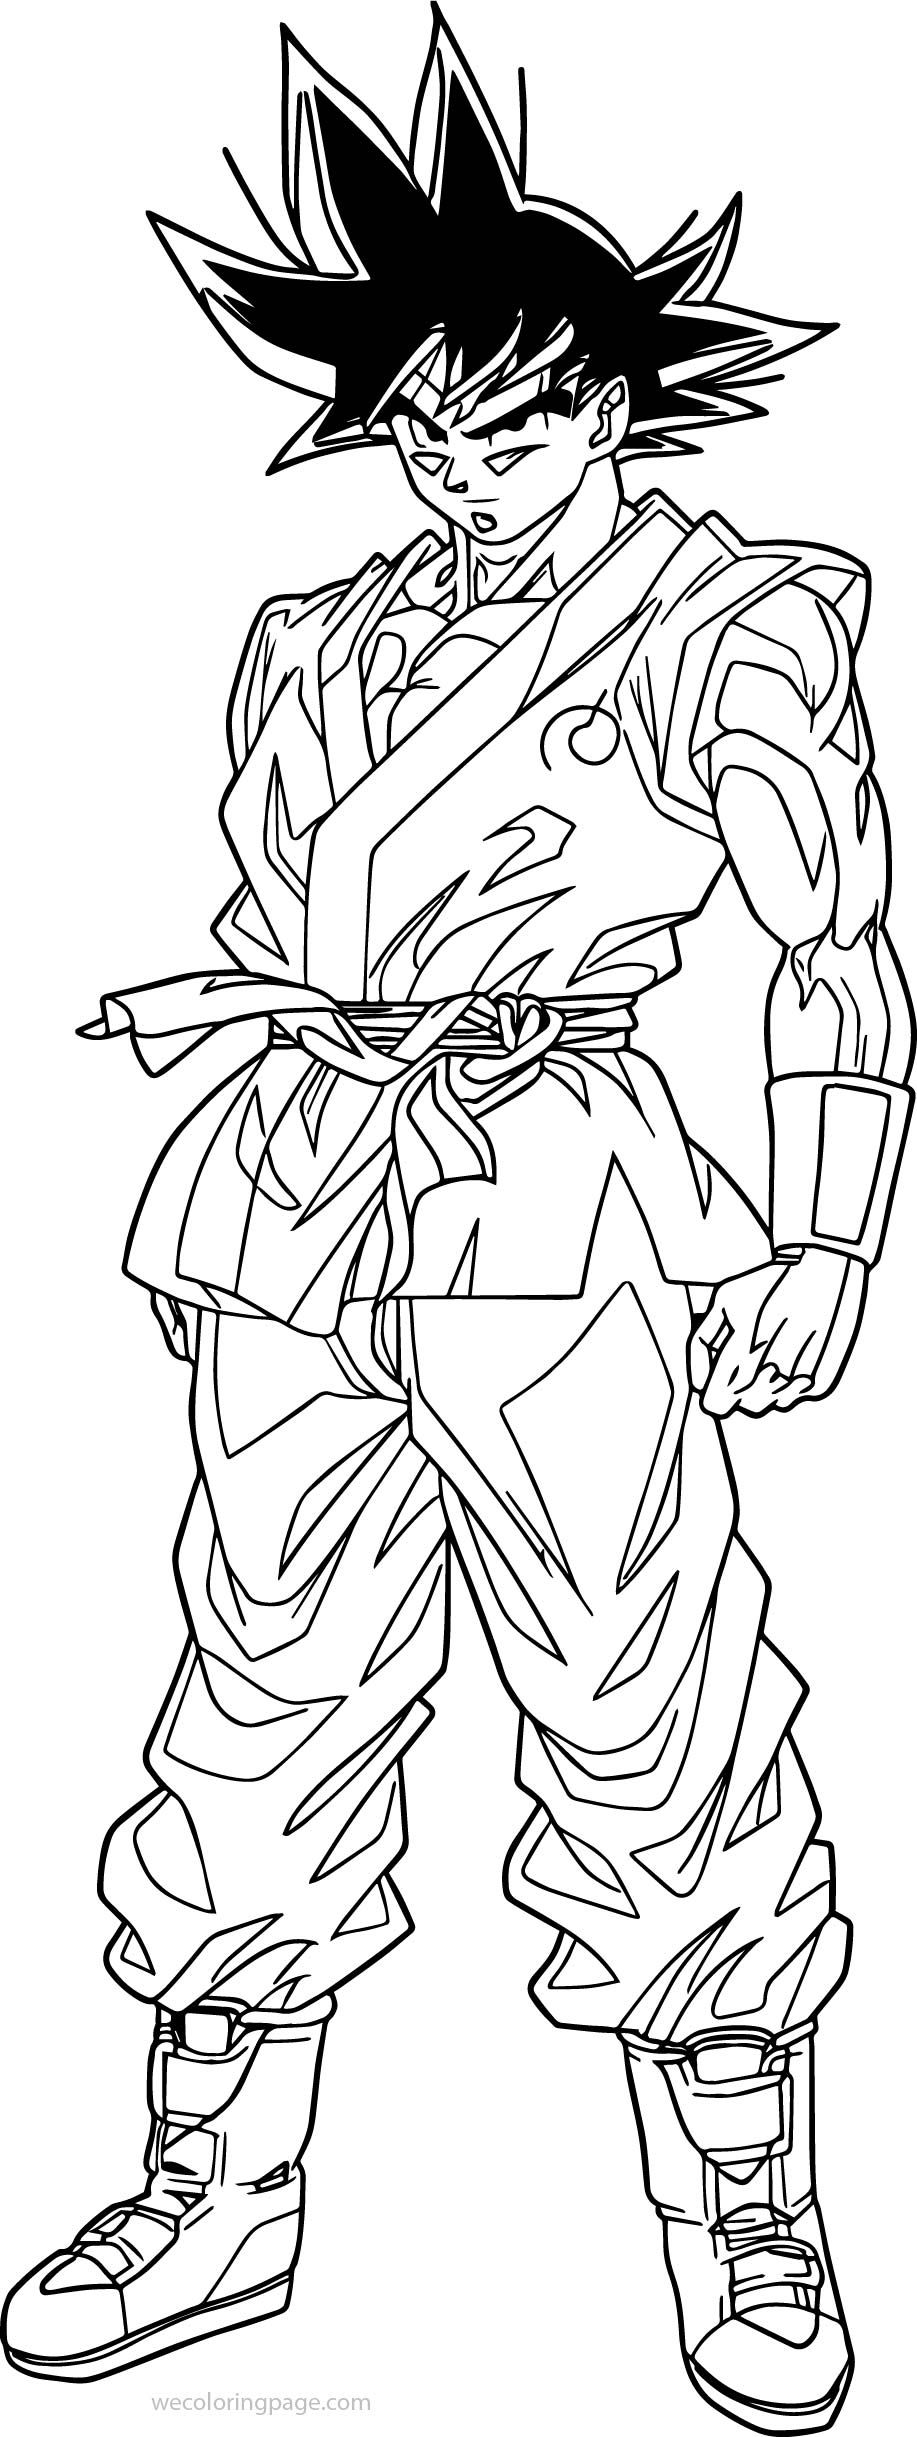 Awesome goku waiting coloring page